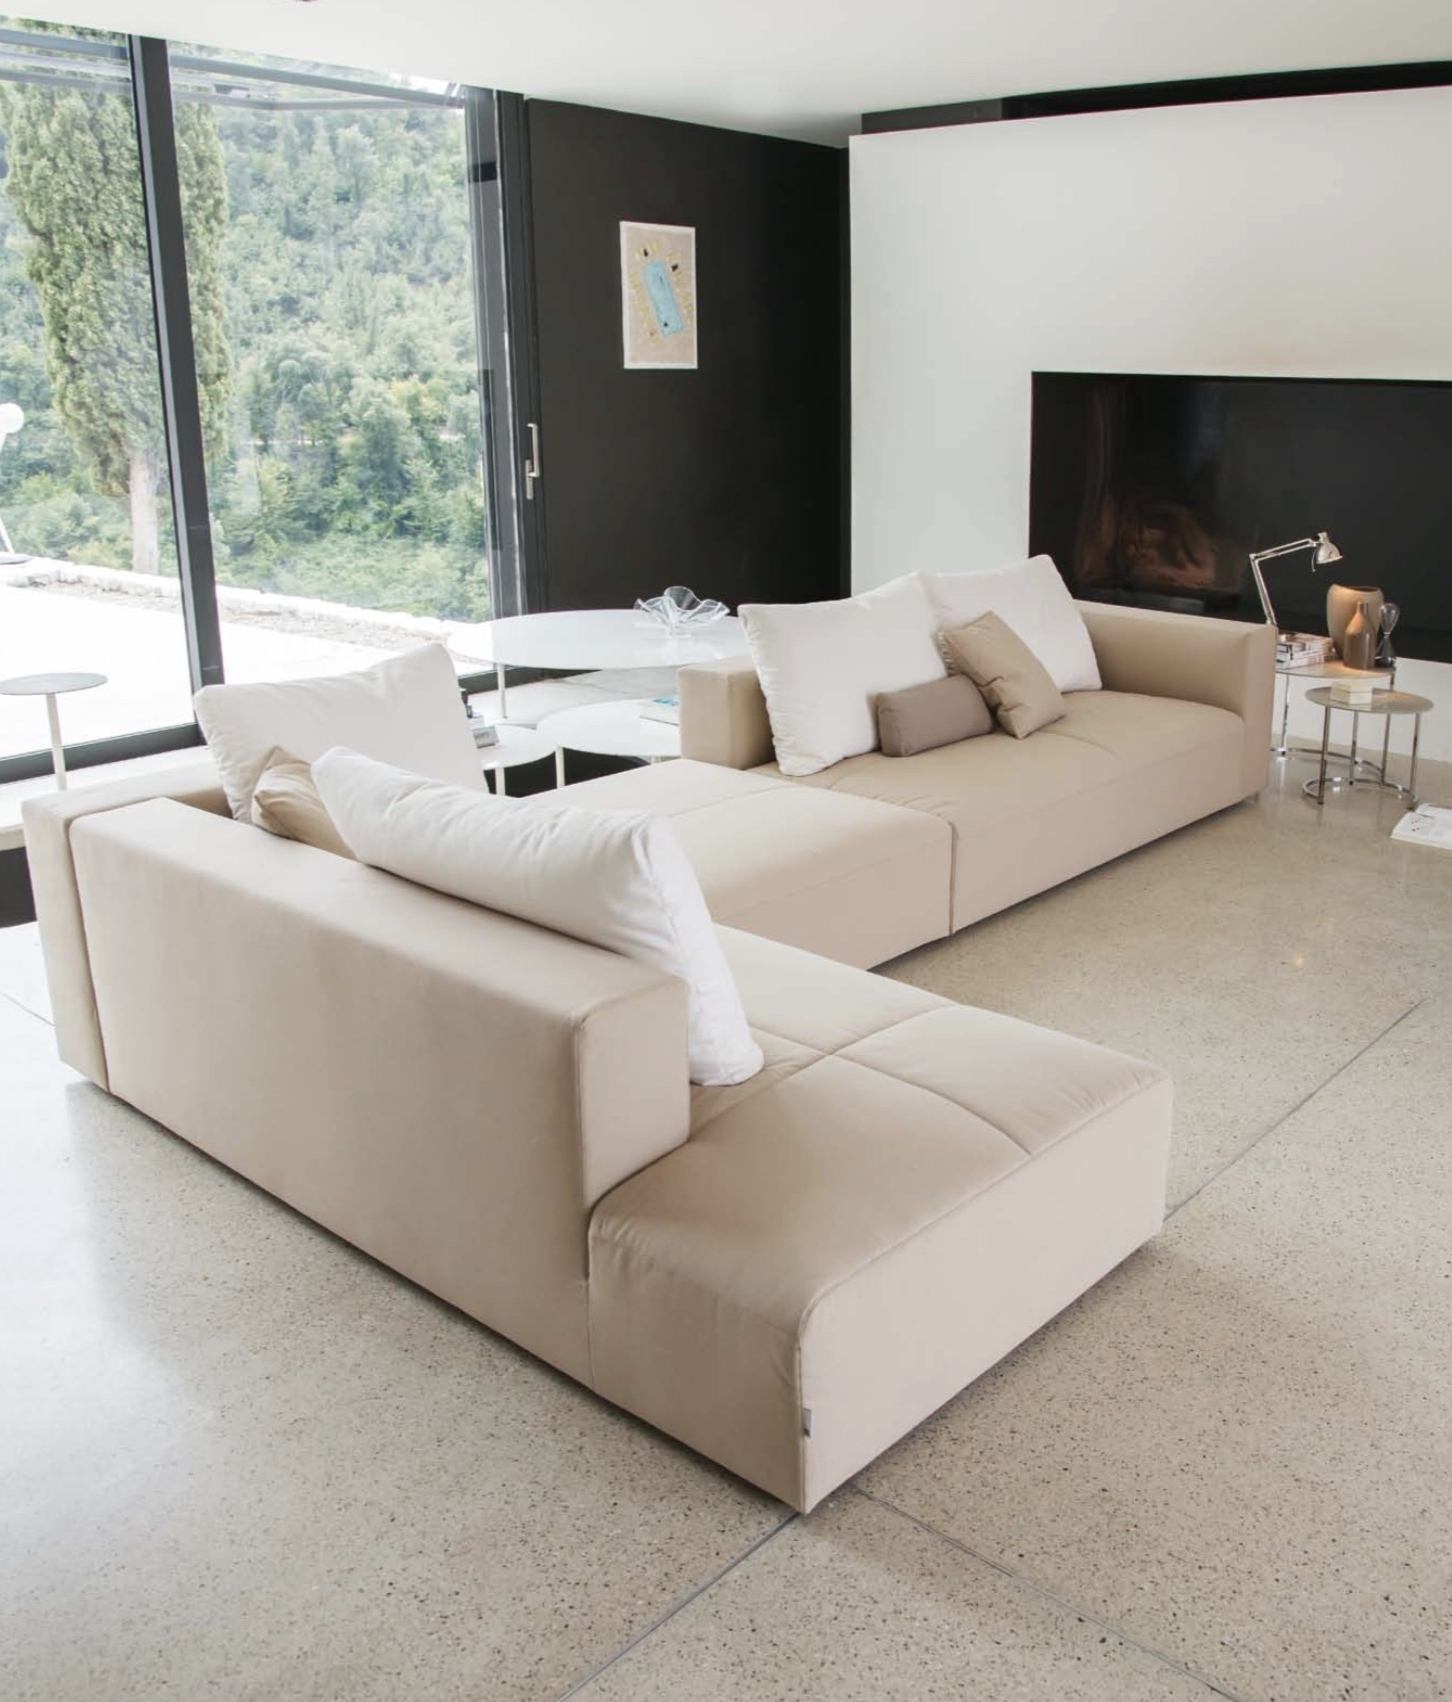 Cute Modern Sectional Sofas With Italian Sectional Sofas Intended For Latest Modern Sectional Sofas (Gallery 14 of 20)